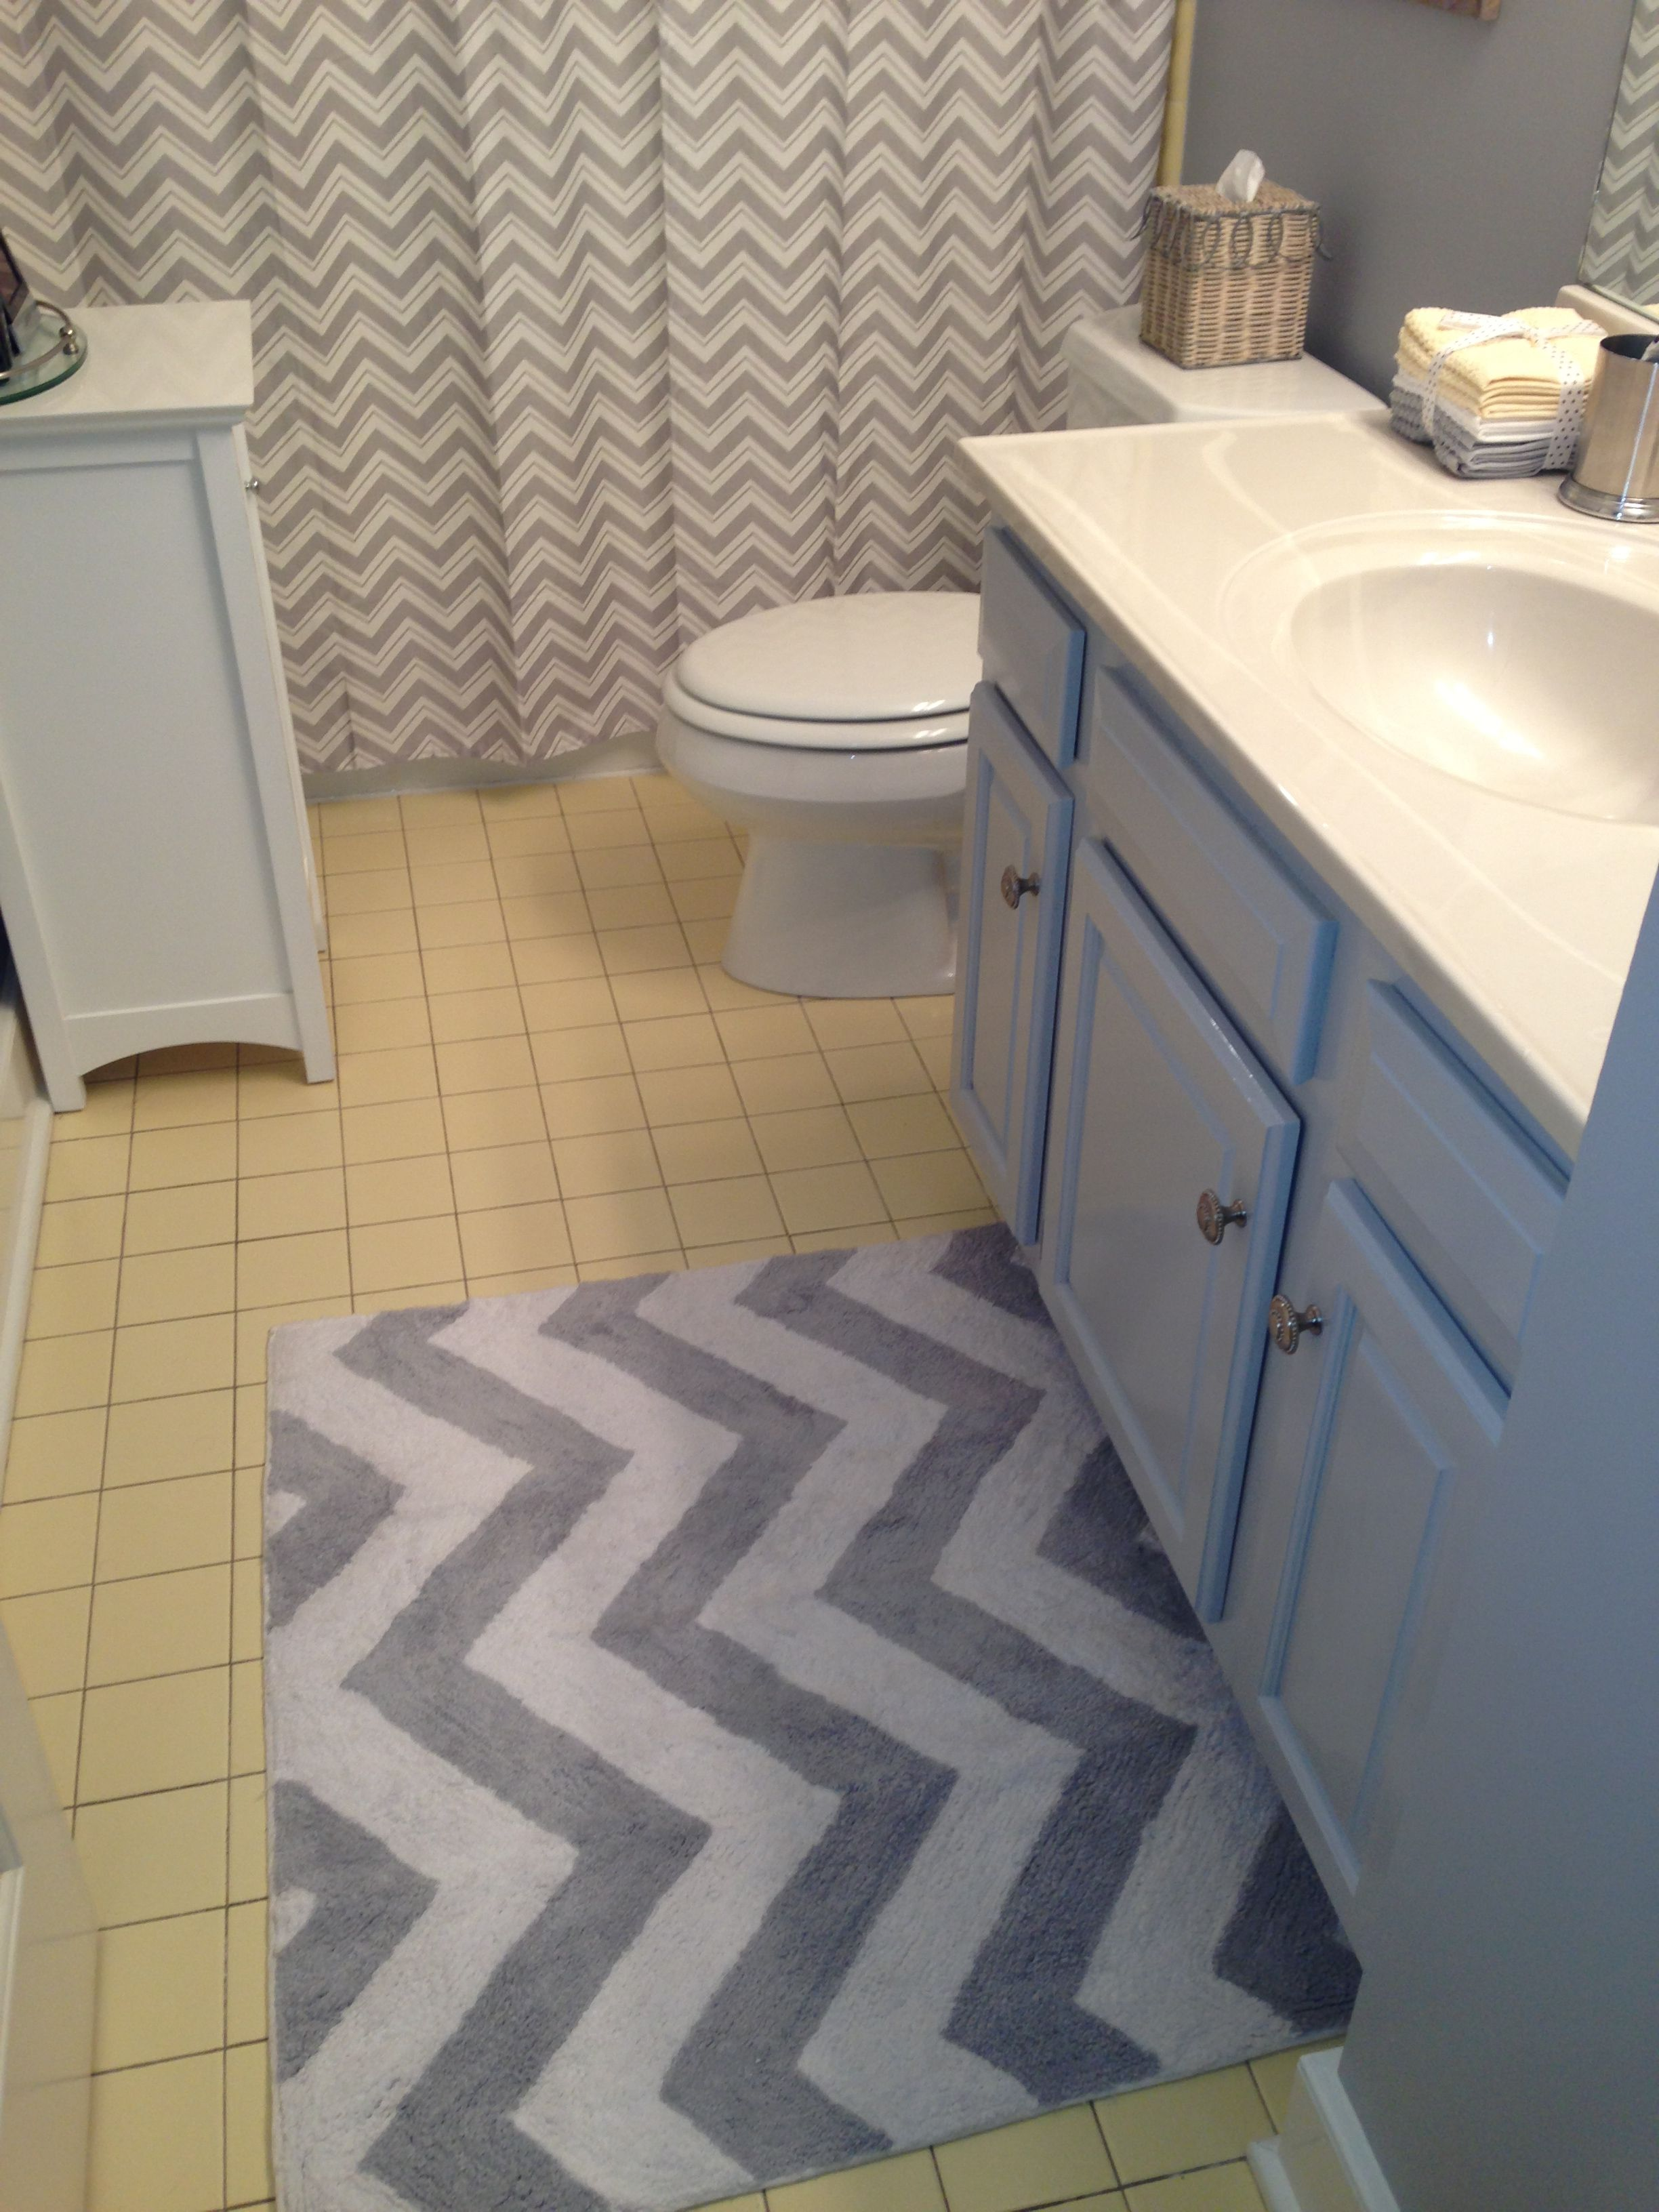 Target Hall Rugs Grey Chevron Rug And Shower Curtain To Update Yellow Tile